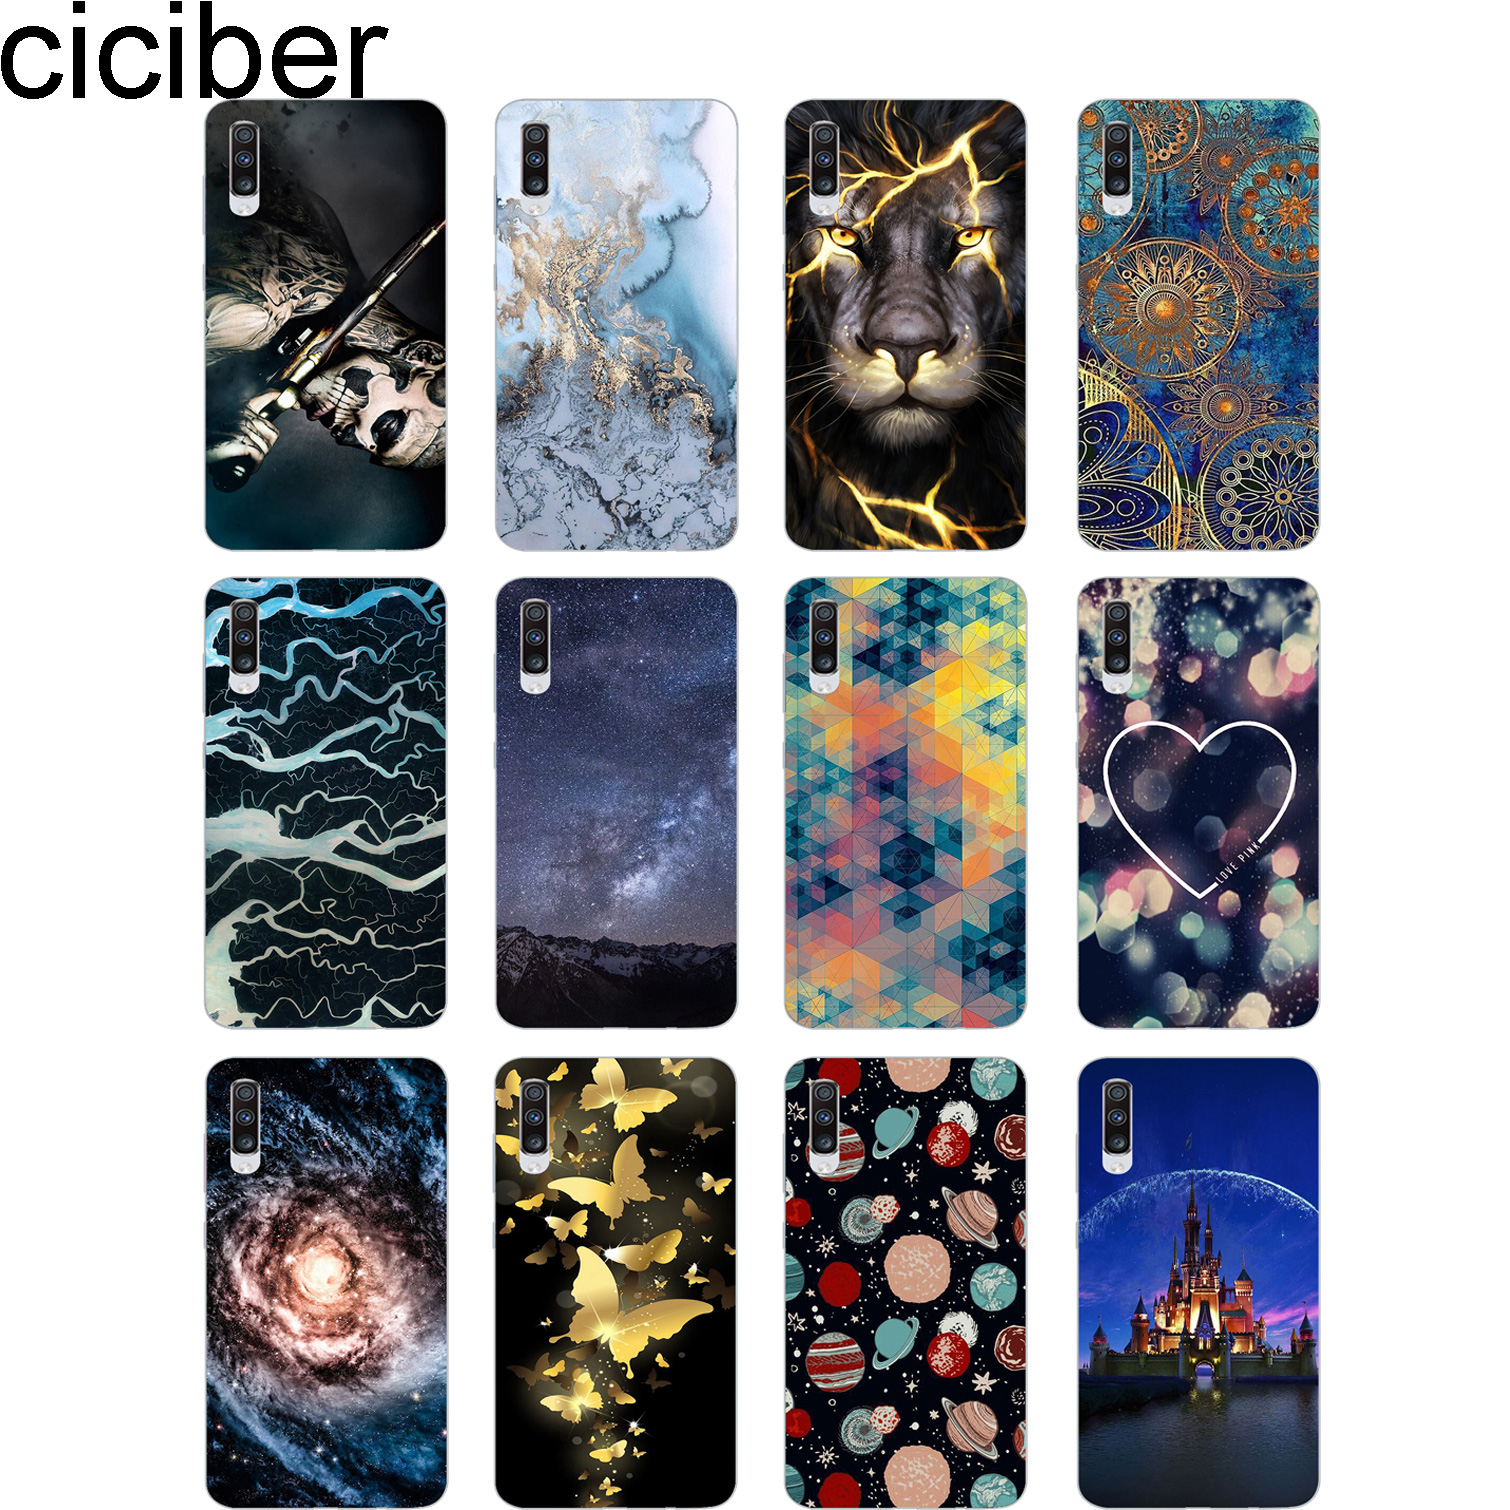 ciciber for <font><b>Samsung</b></font> Galaxy A60 <font><b>A70</b></font> A80 Phone Case Soft Silicone Cover Fundas Flower and Animal Scenery Planet Coque Capa <font><b>Hoesje</b></font> image